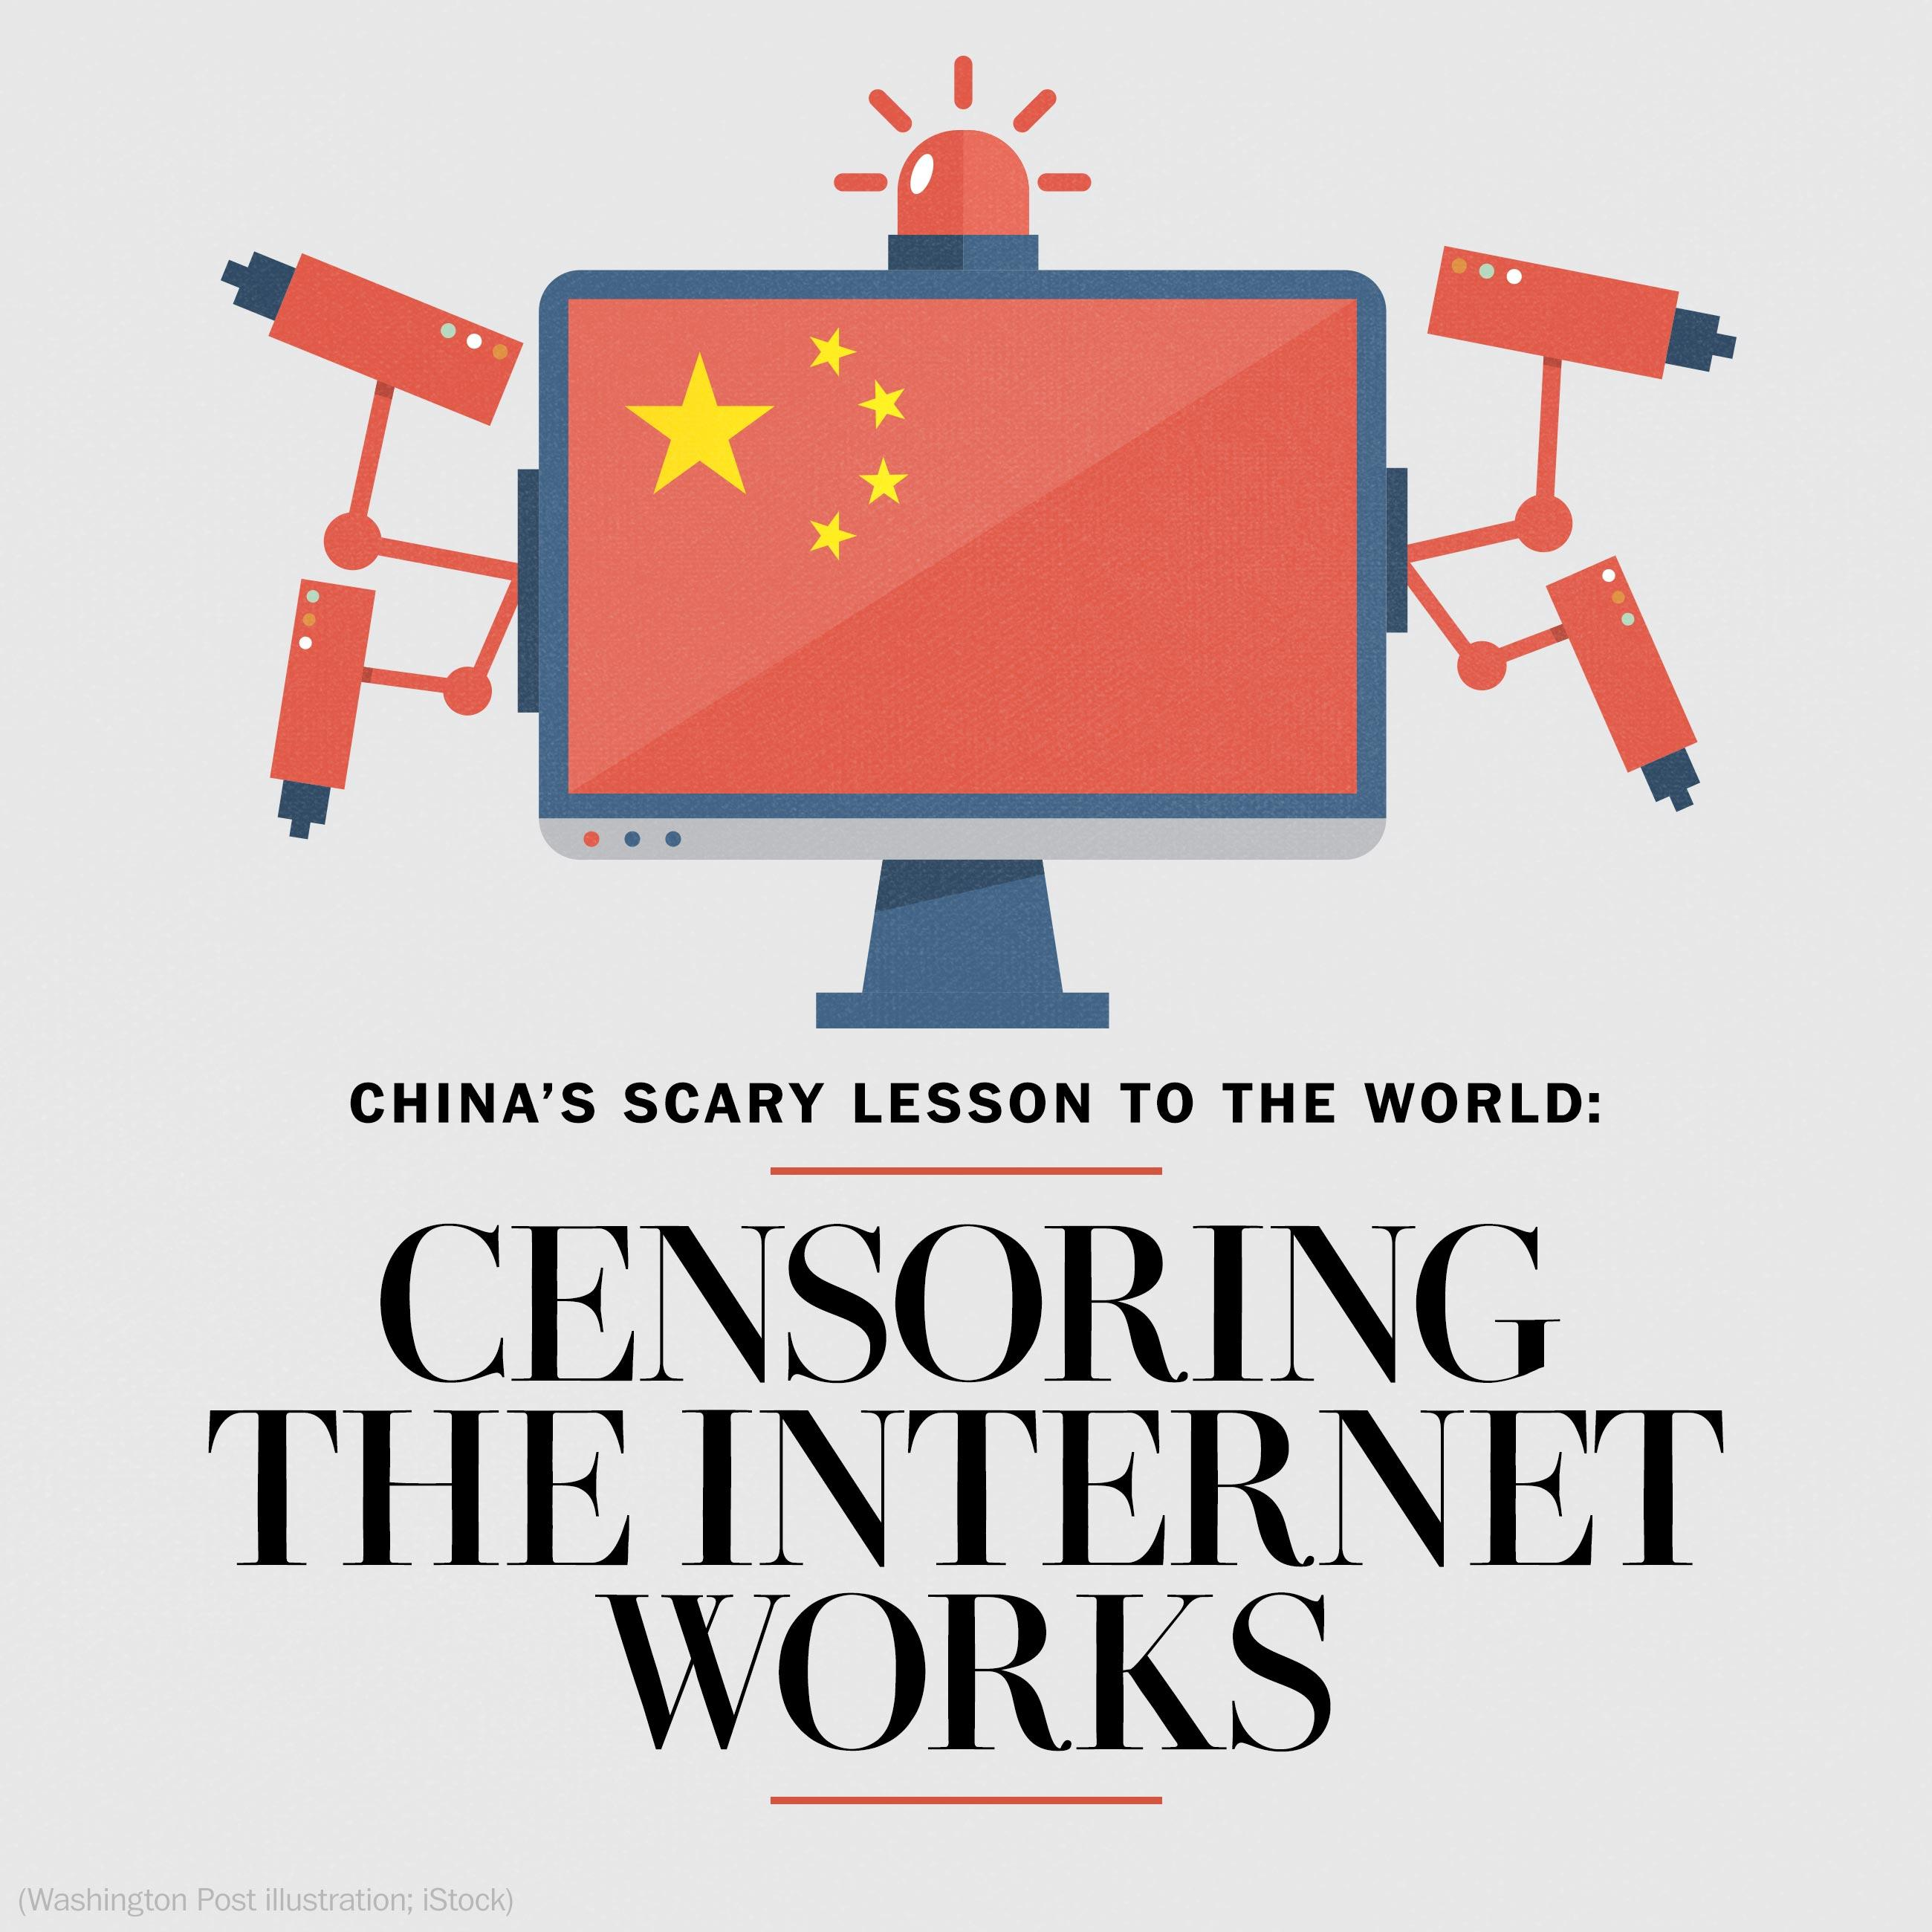 China's scary lesson to the world: Censoring the Internet works.